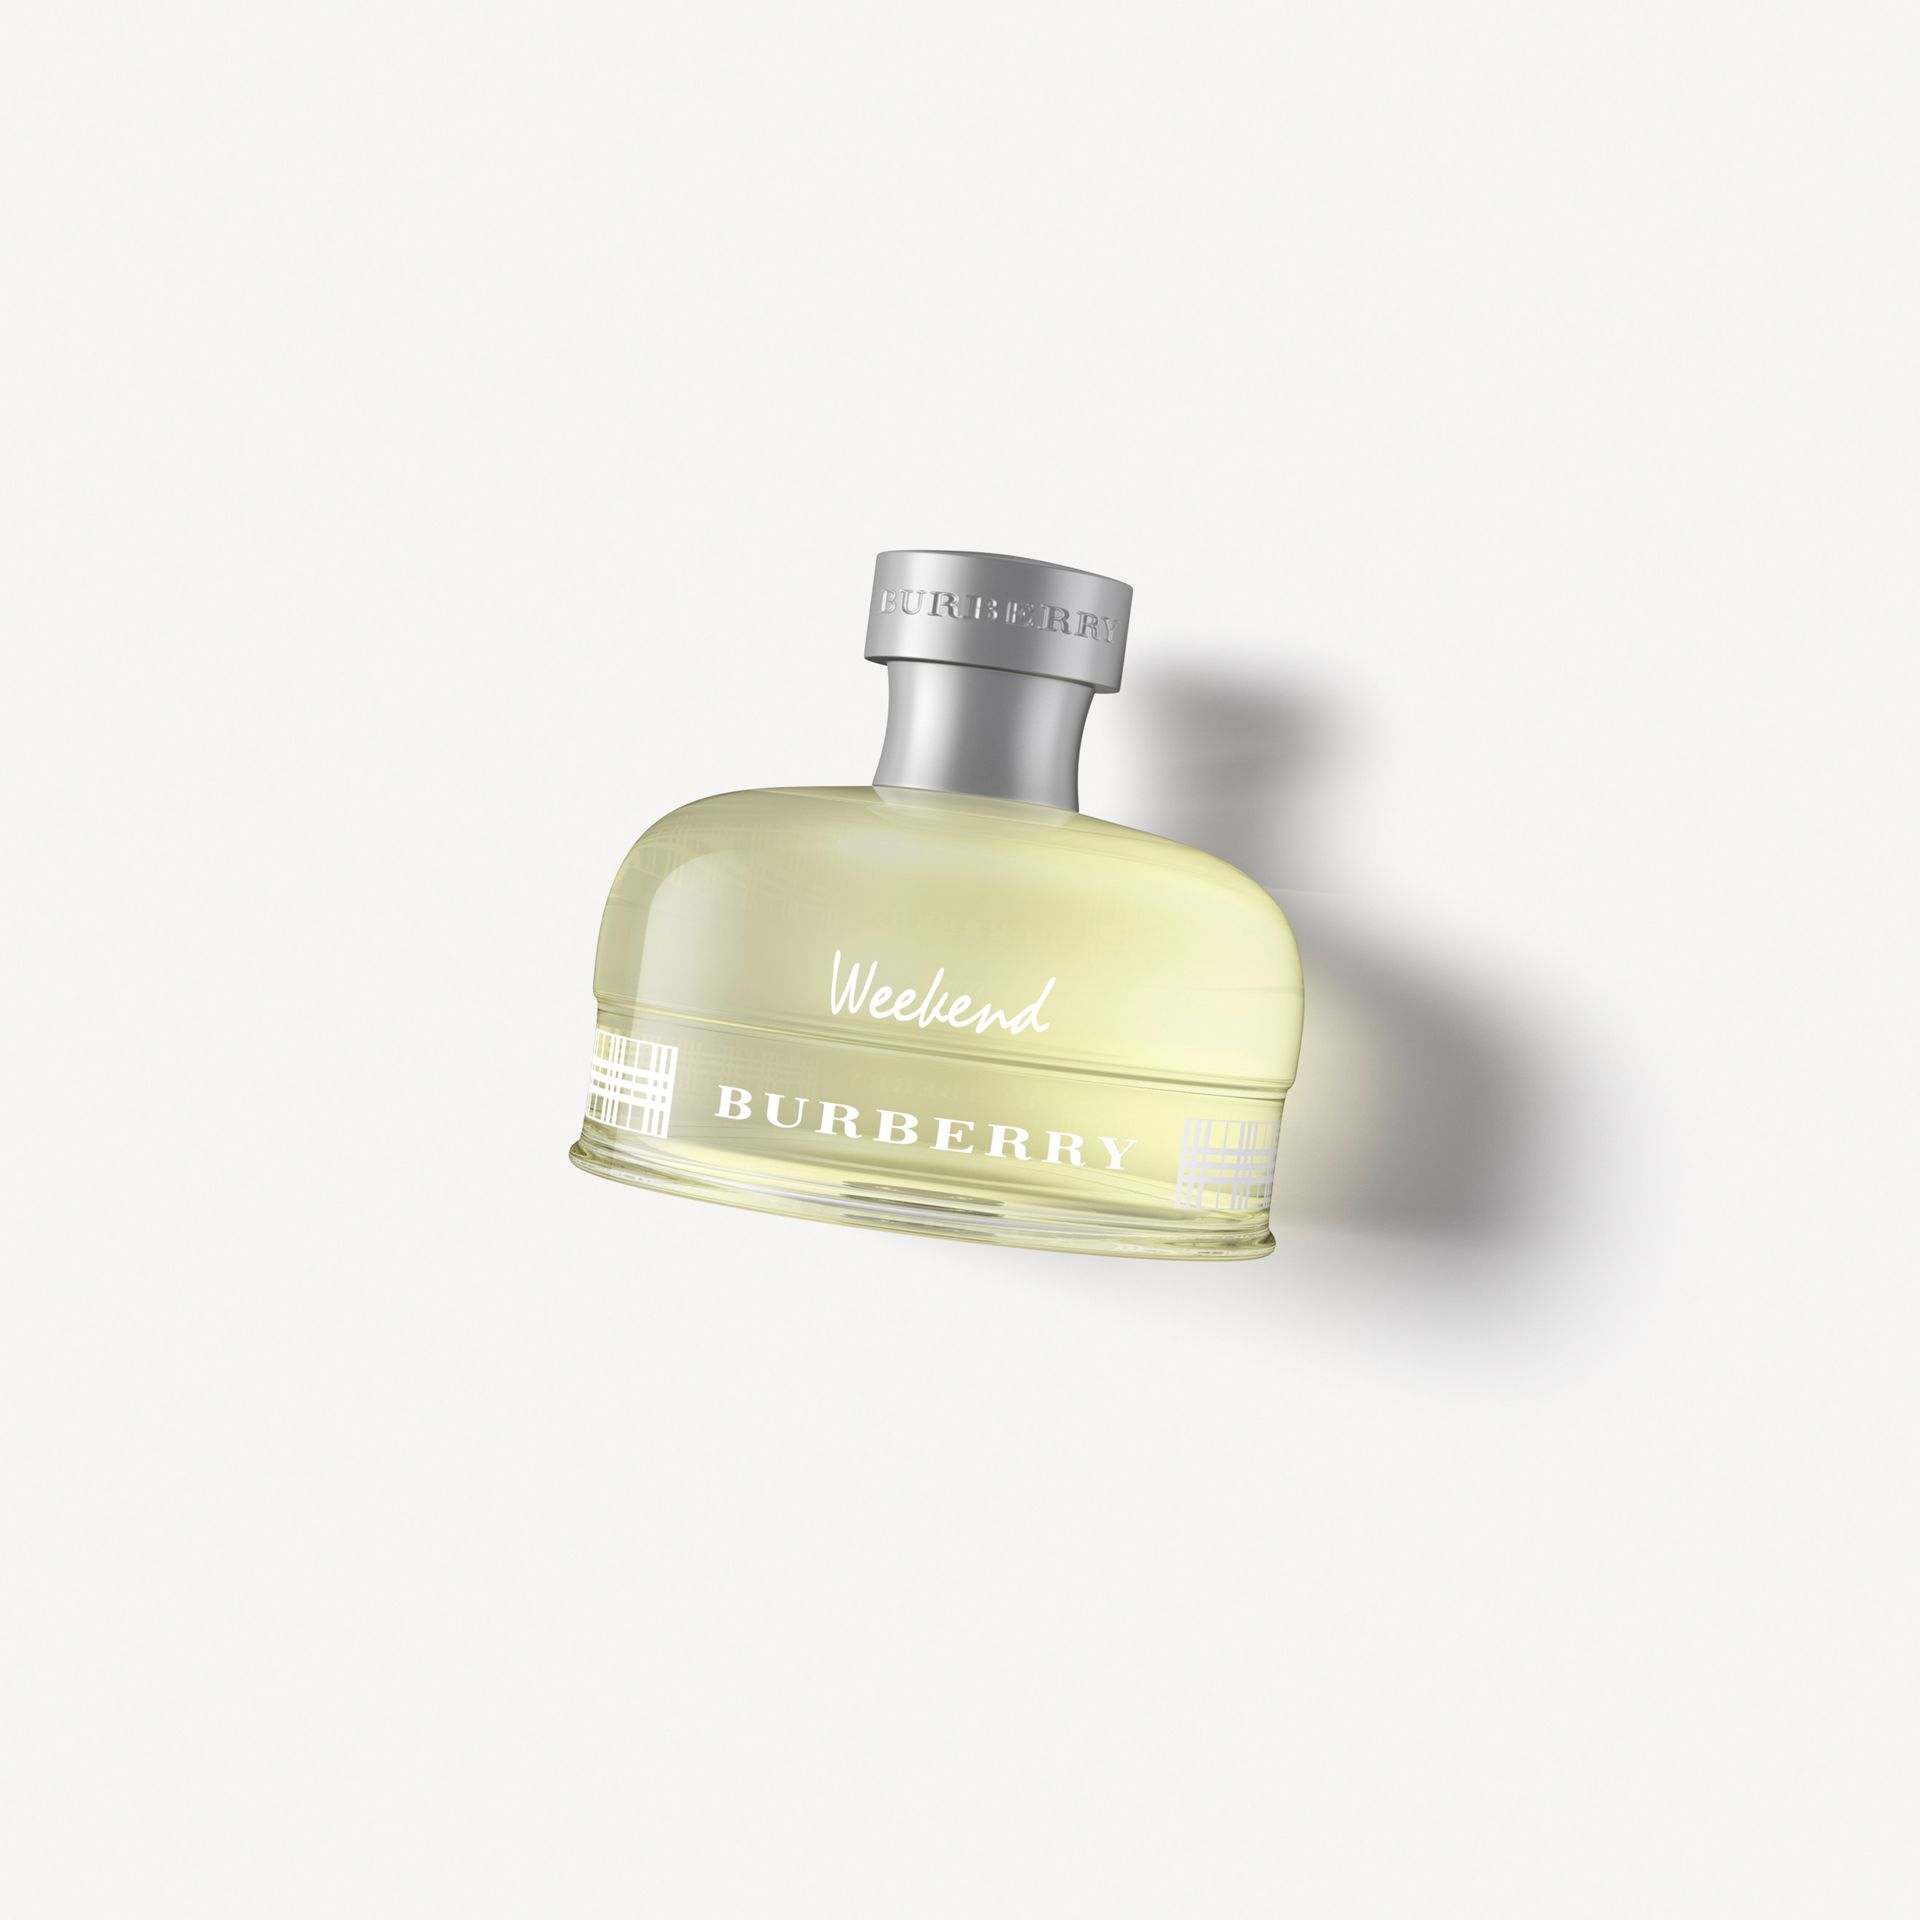 Burberry Weekend Eau de Parfum 100ml - Women | Burberry Australia - gallery image 1